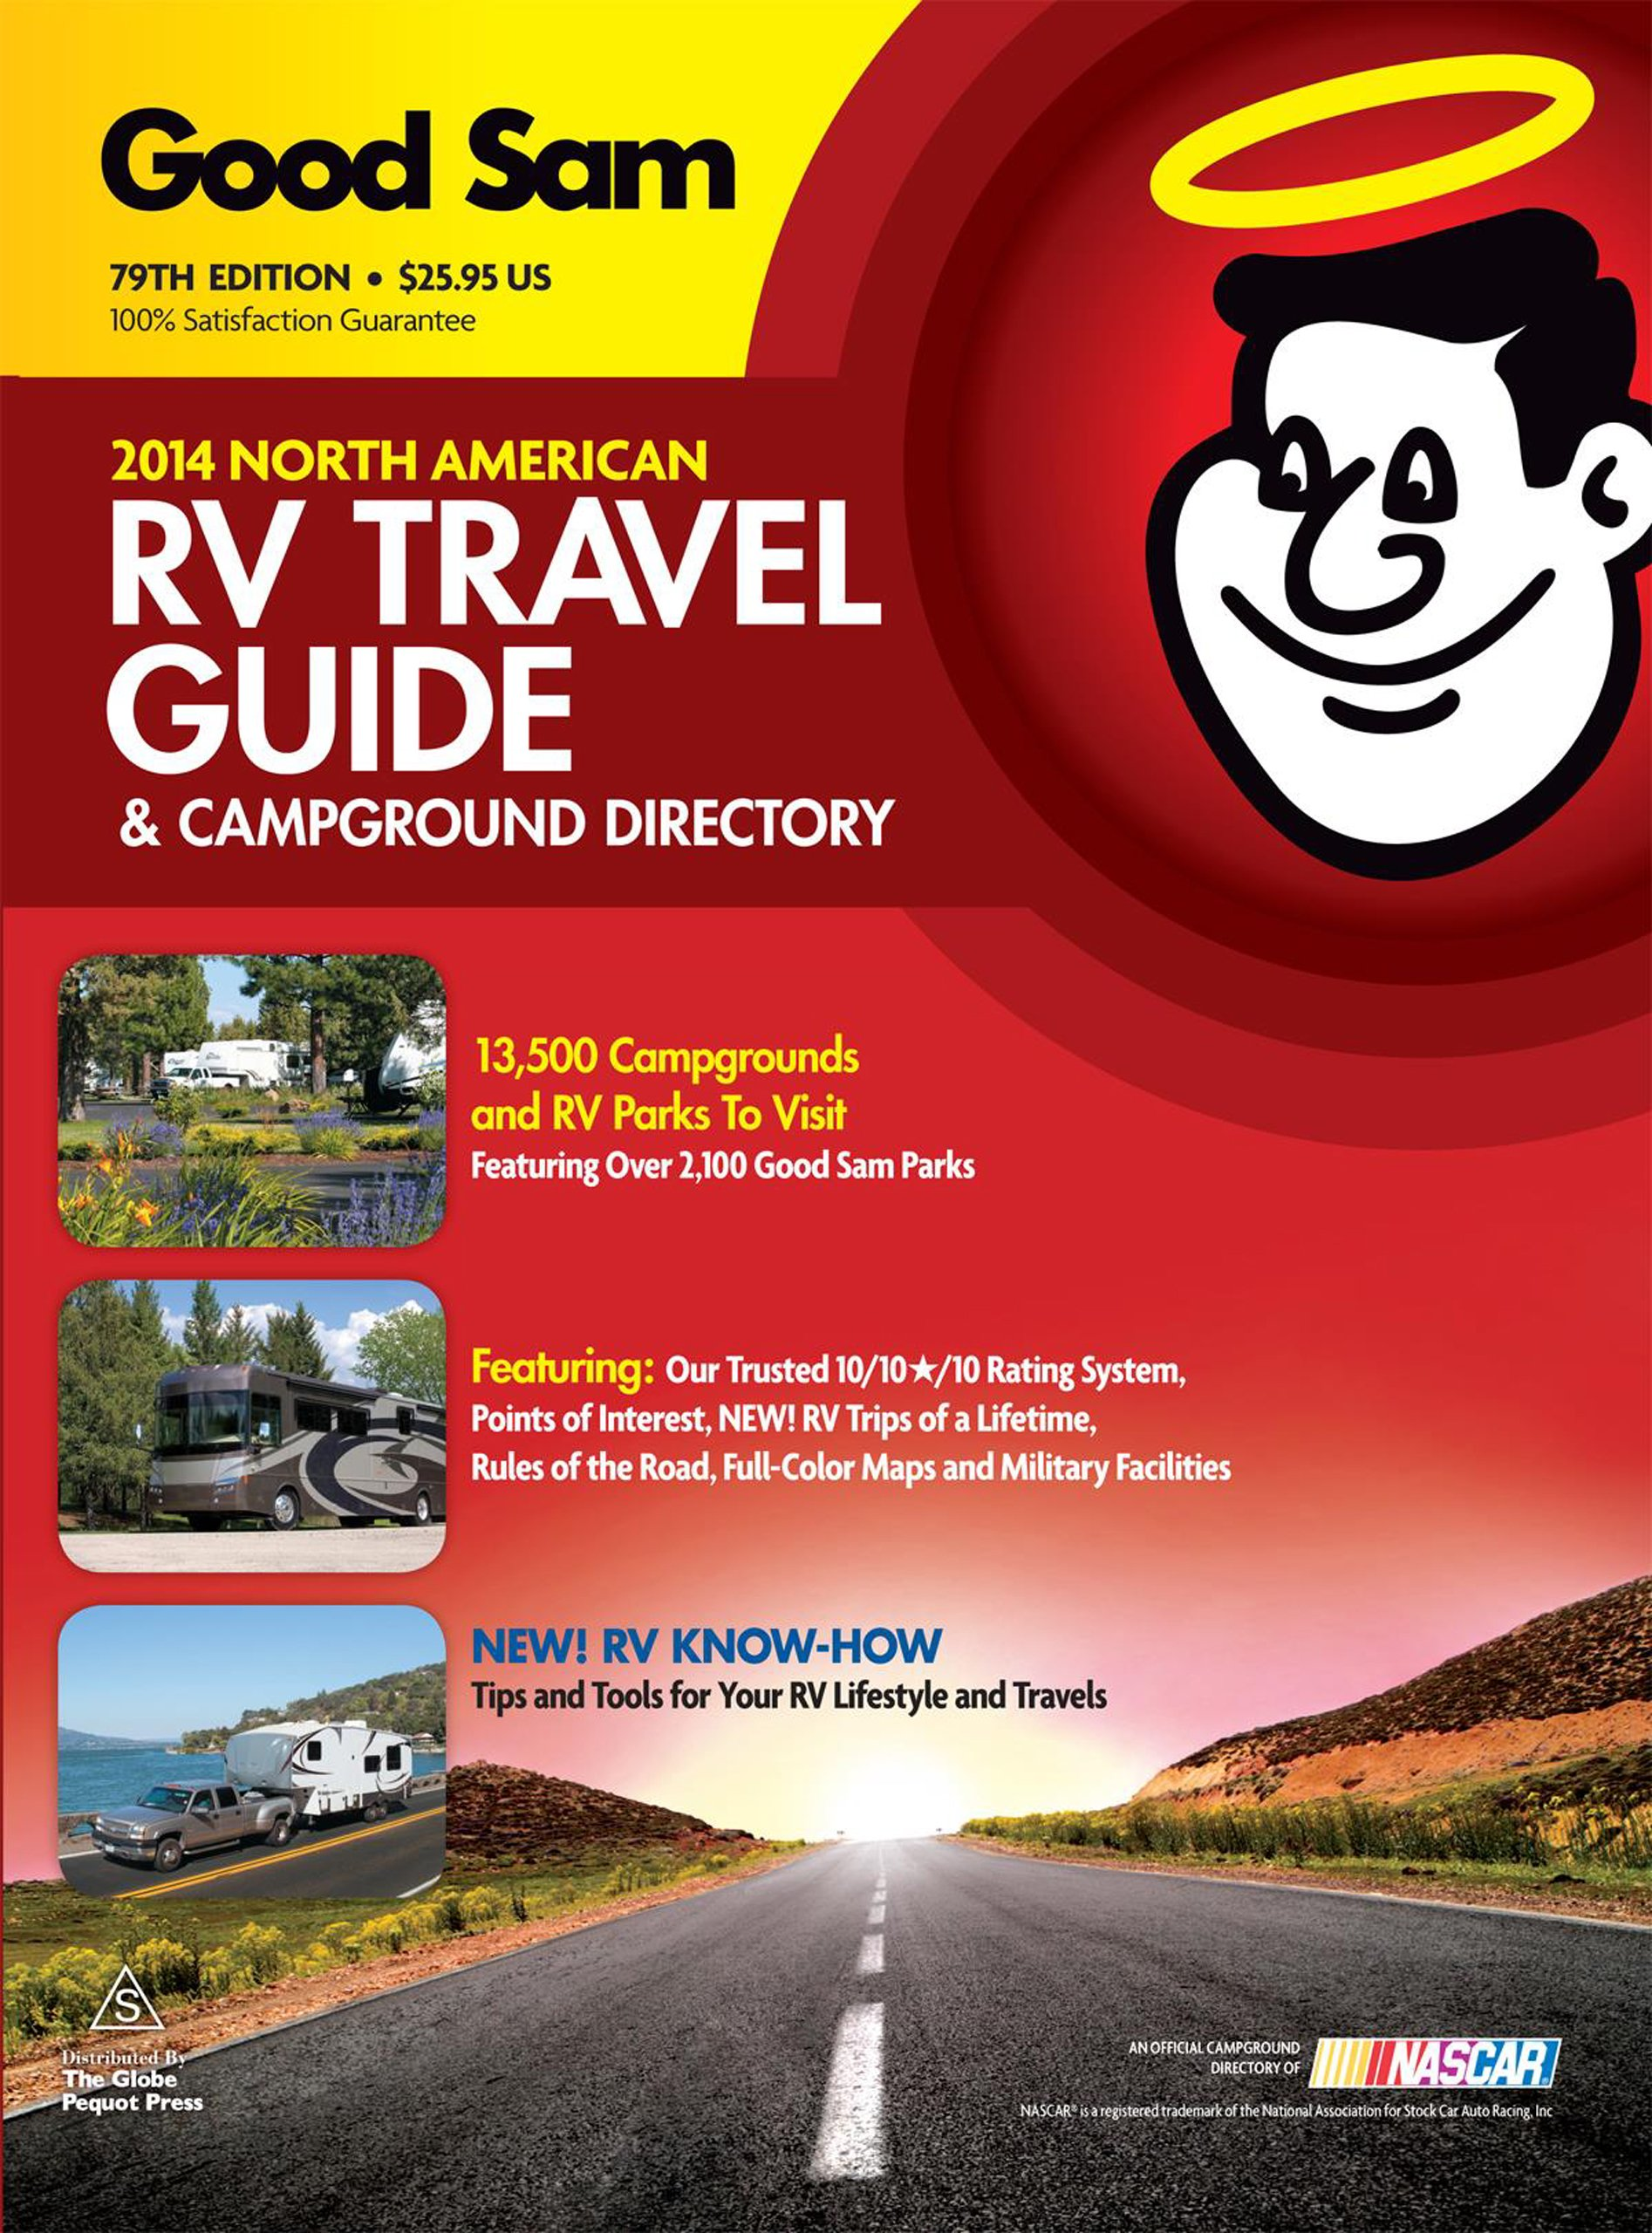 Good Sam RV Travel Guide  Campground Directory The Most - Us travel map for rv